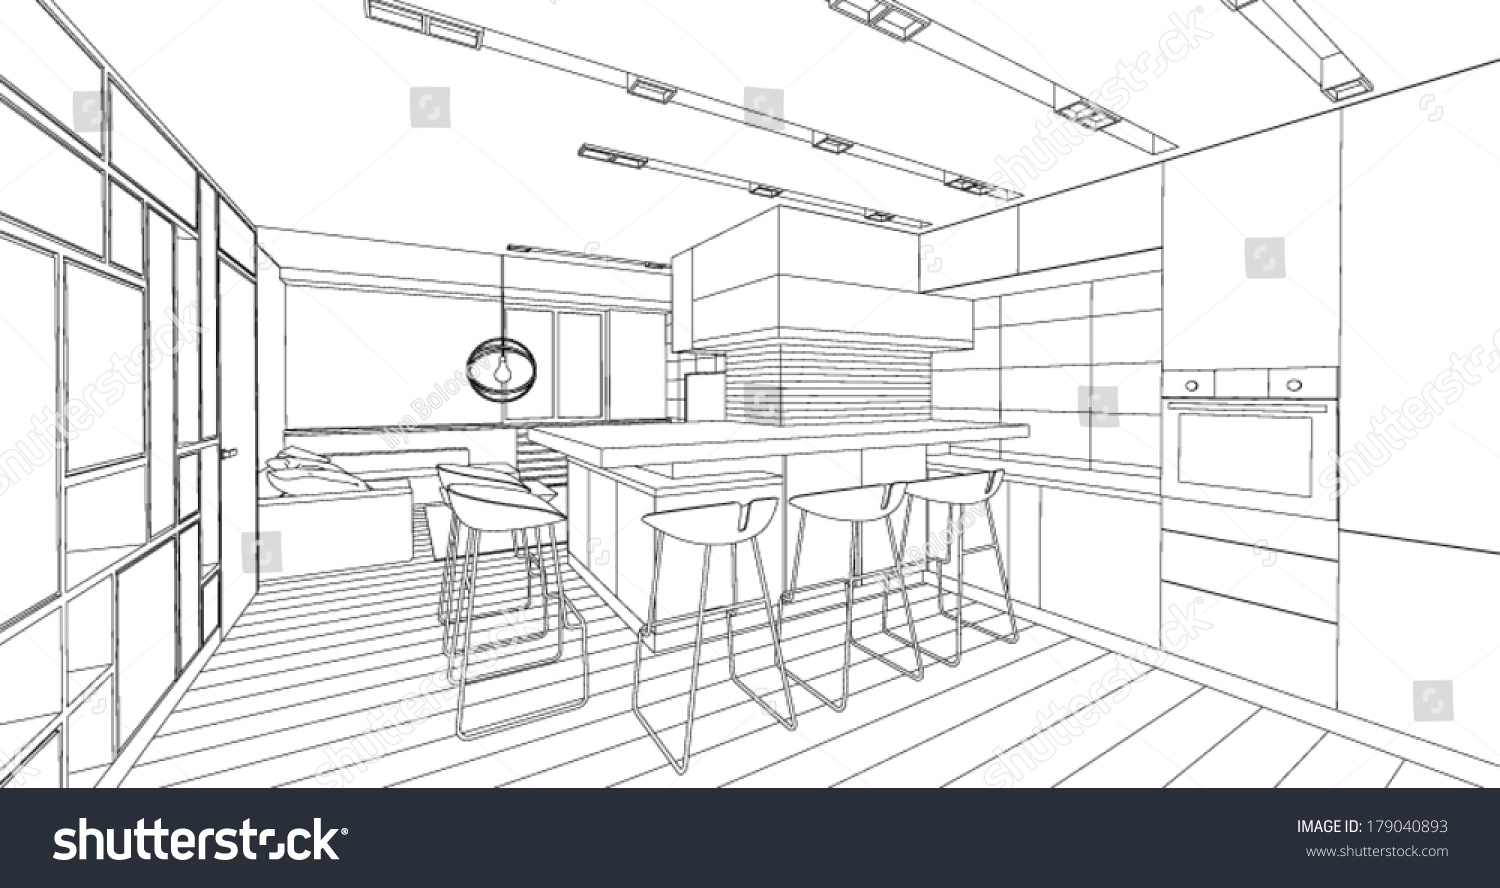 Interior vector drawing architectural design living stock for Drawing room interior design photos